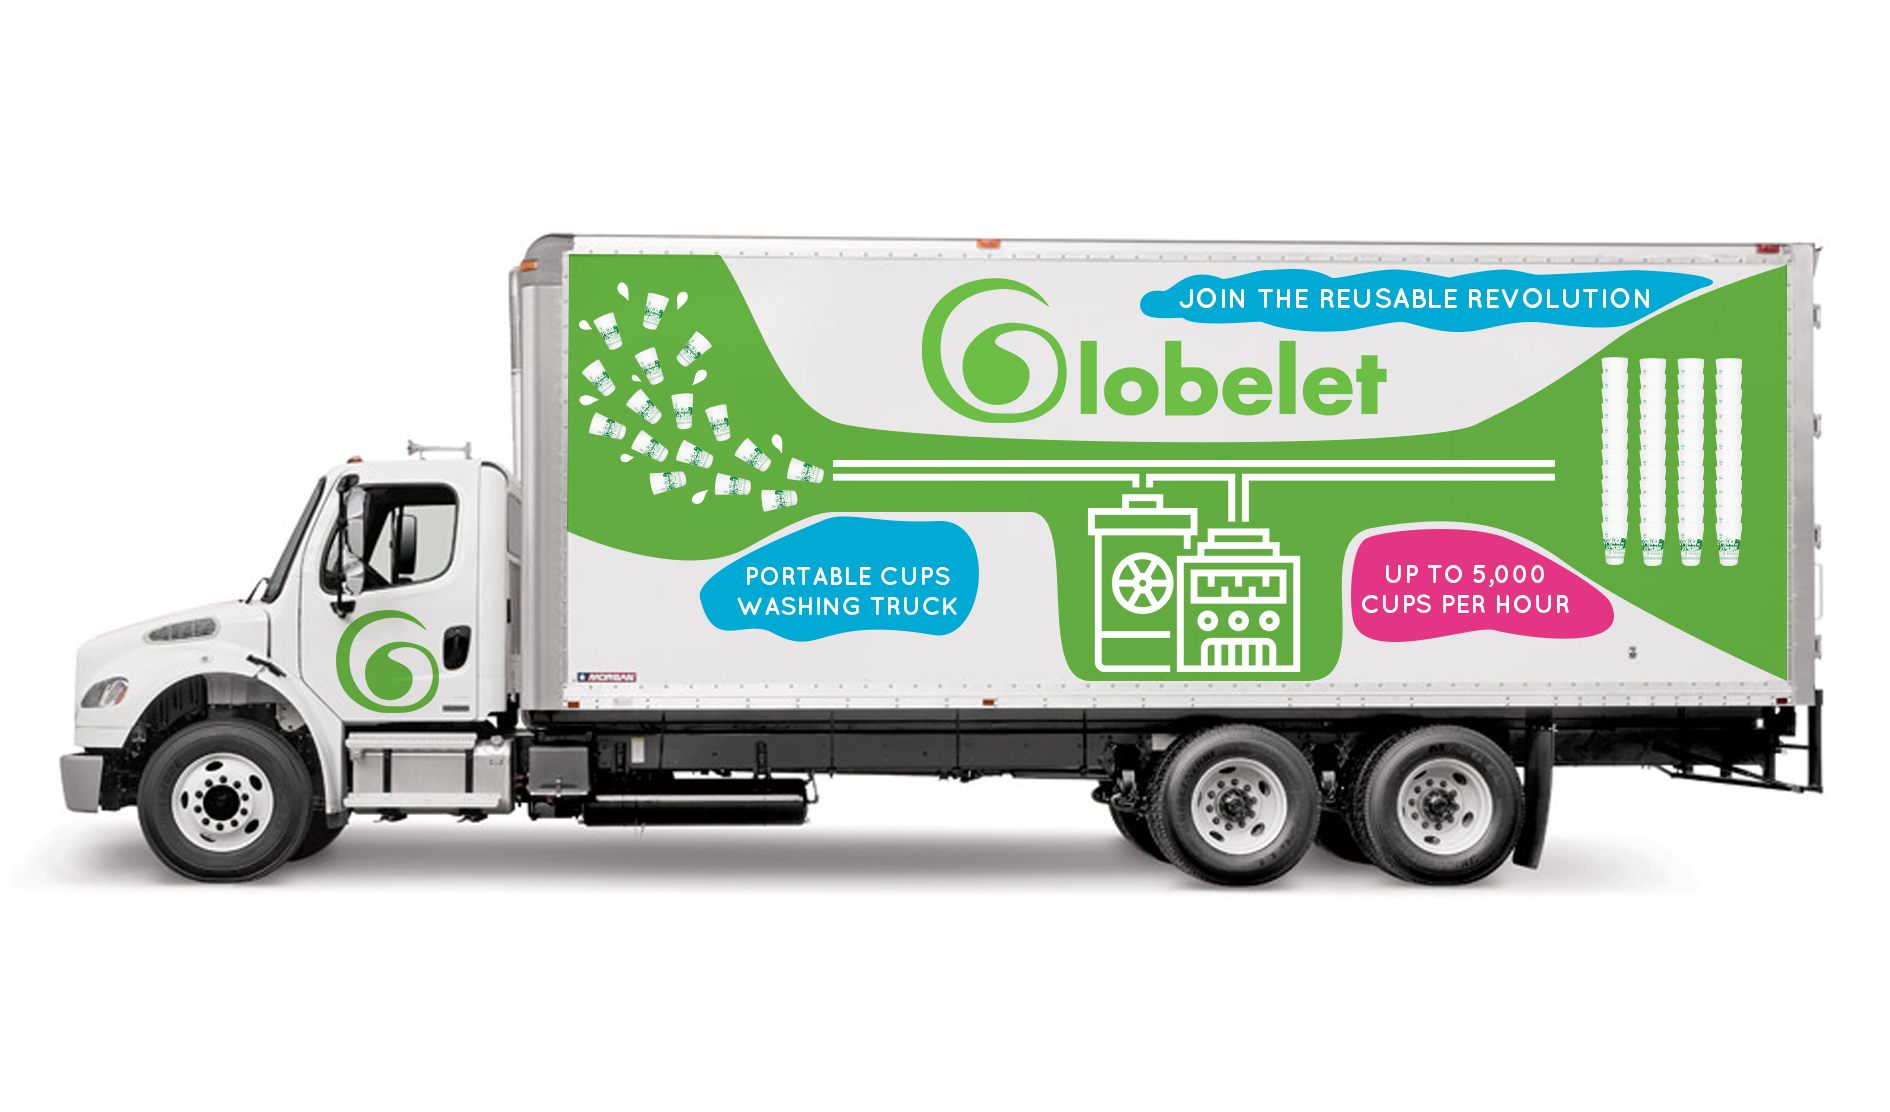 Globelet Mobile Washing Truck